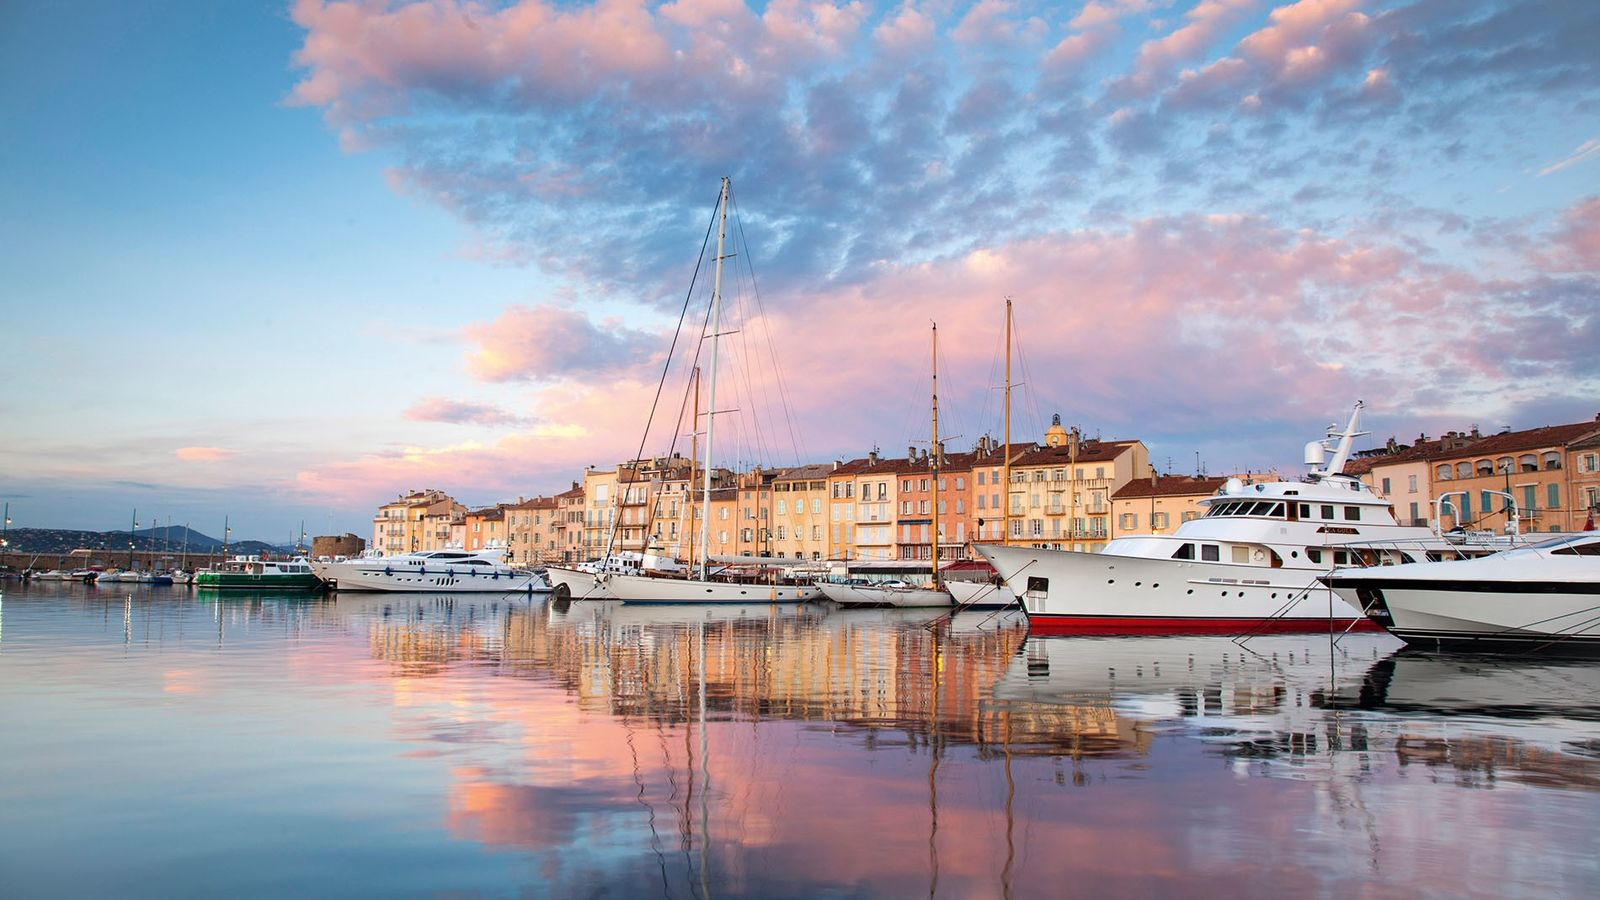 With exquisite design, gourmet cuisine and jaw-dropping settings, Saint-Tropez's hotels are well worth the splurge.